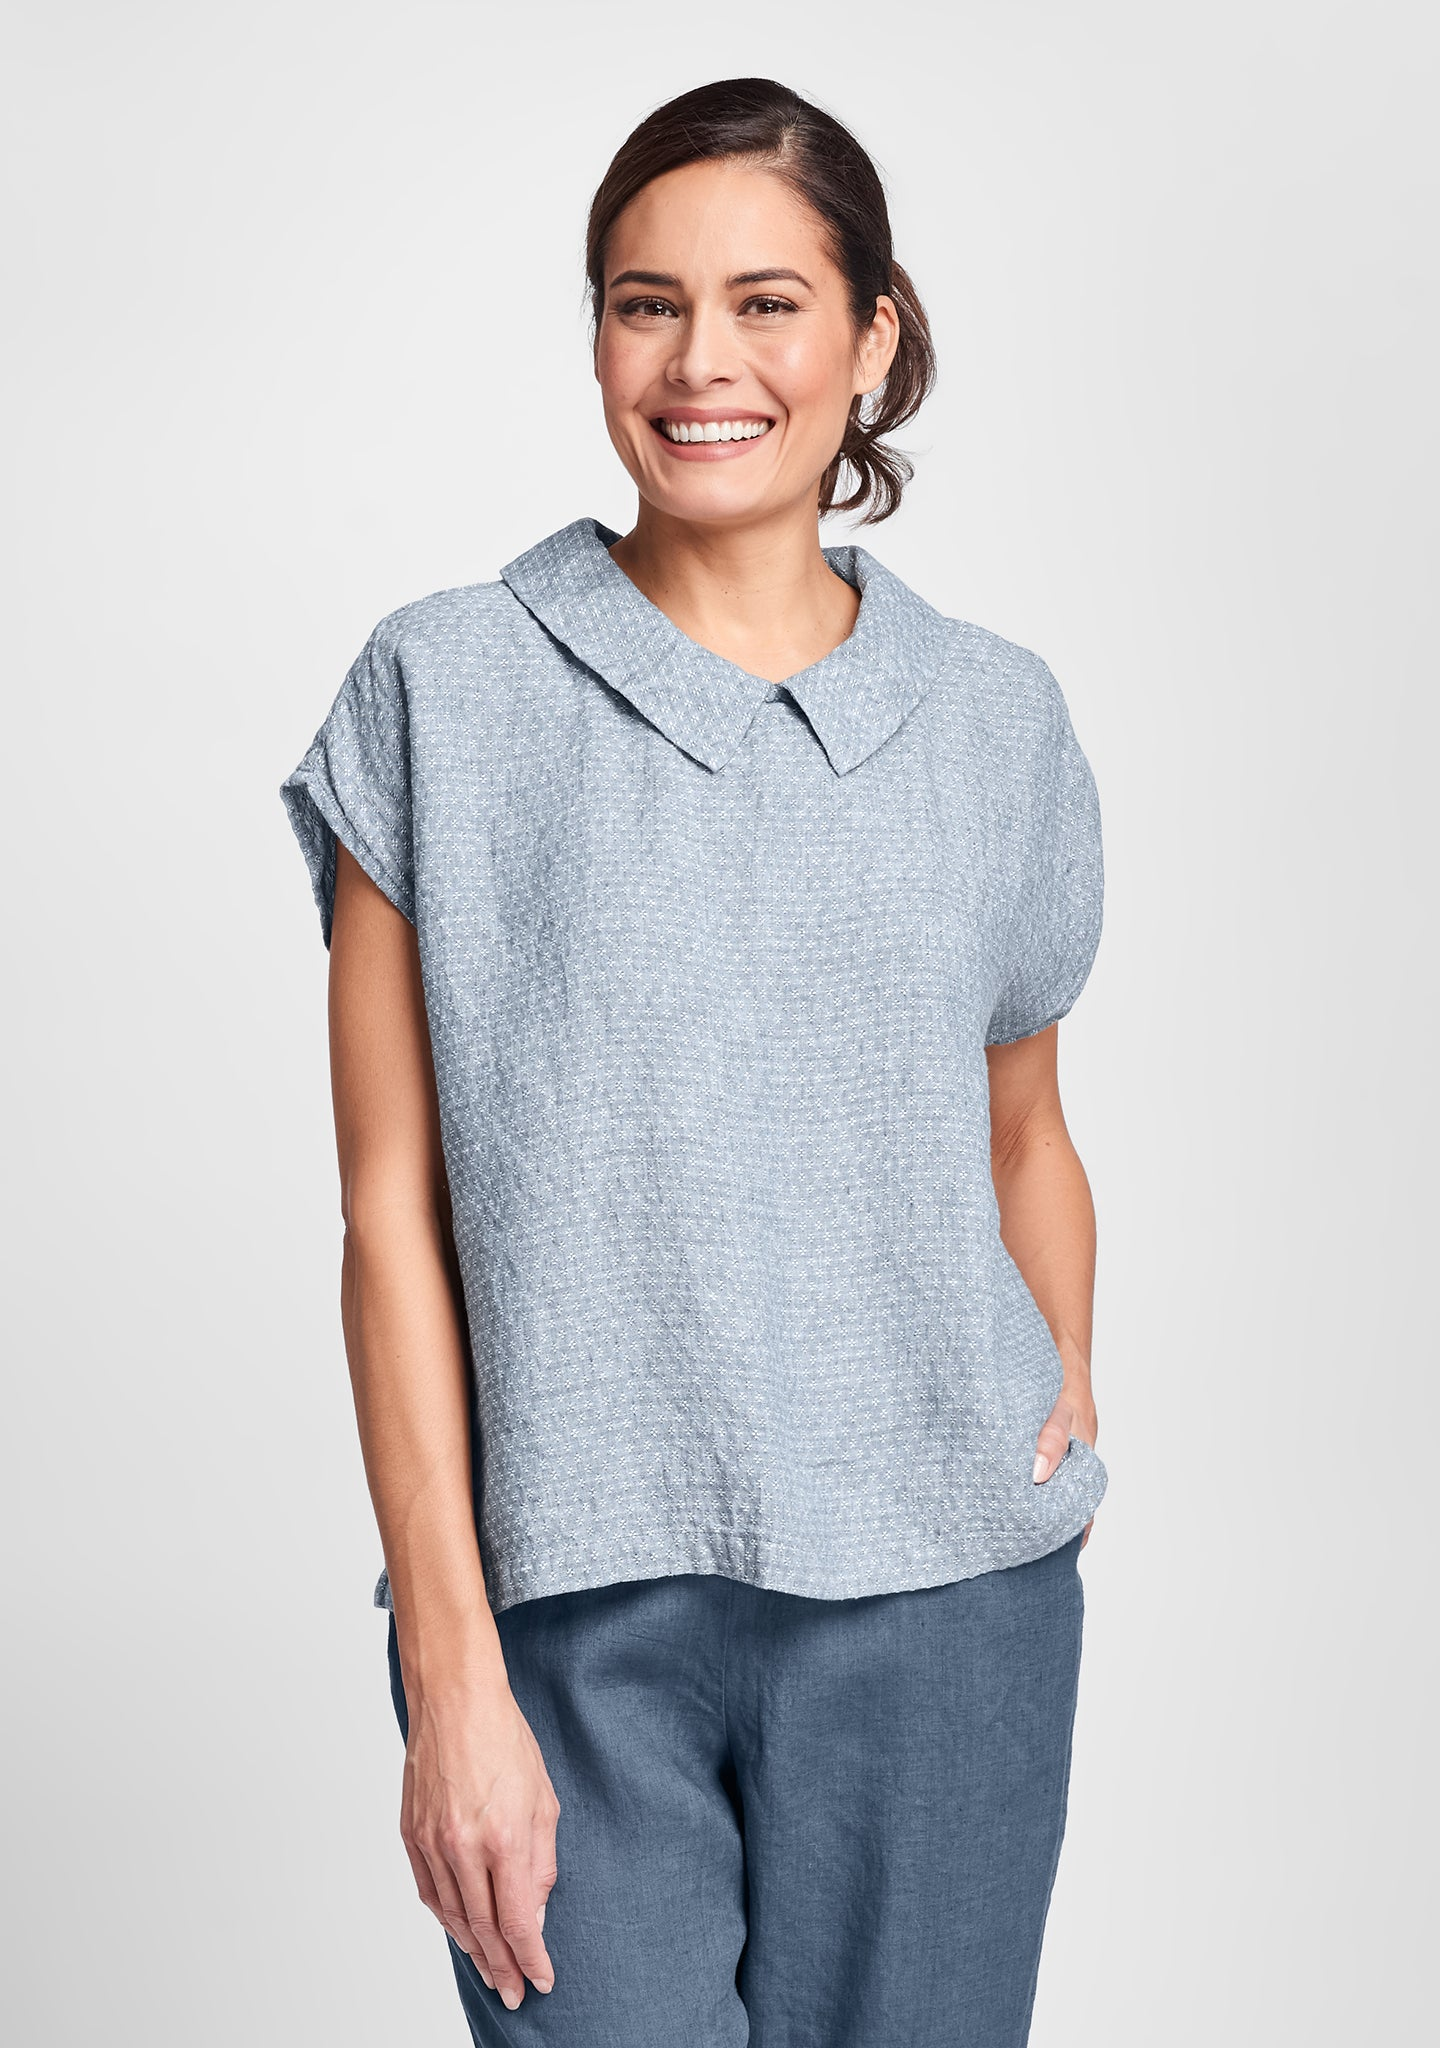 starlet top linen shirt blue